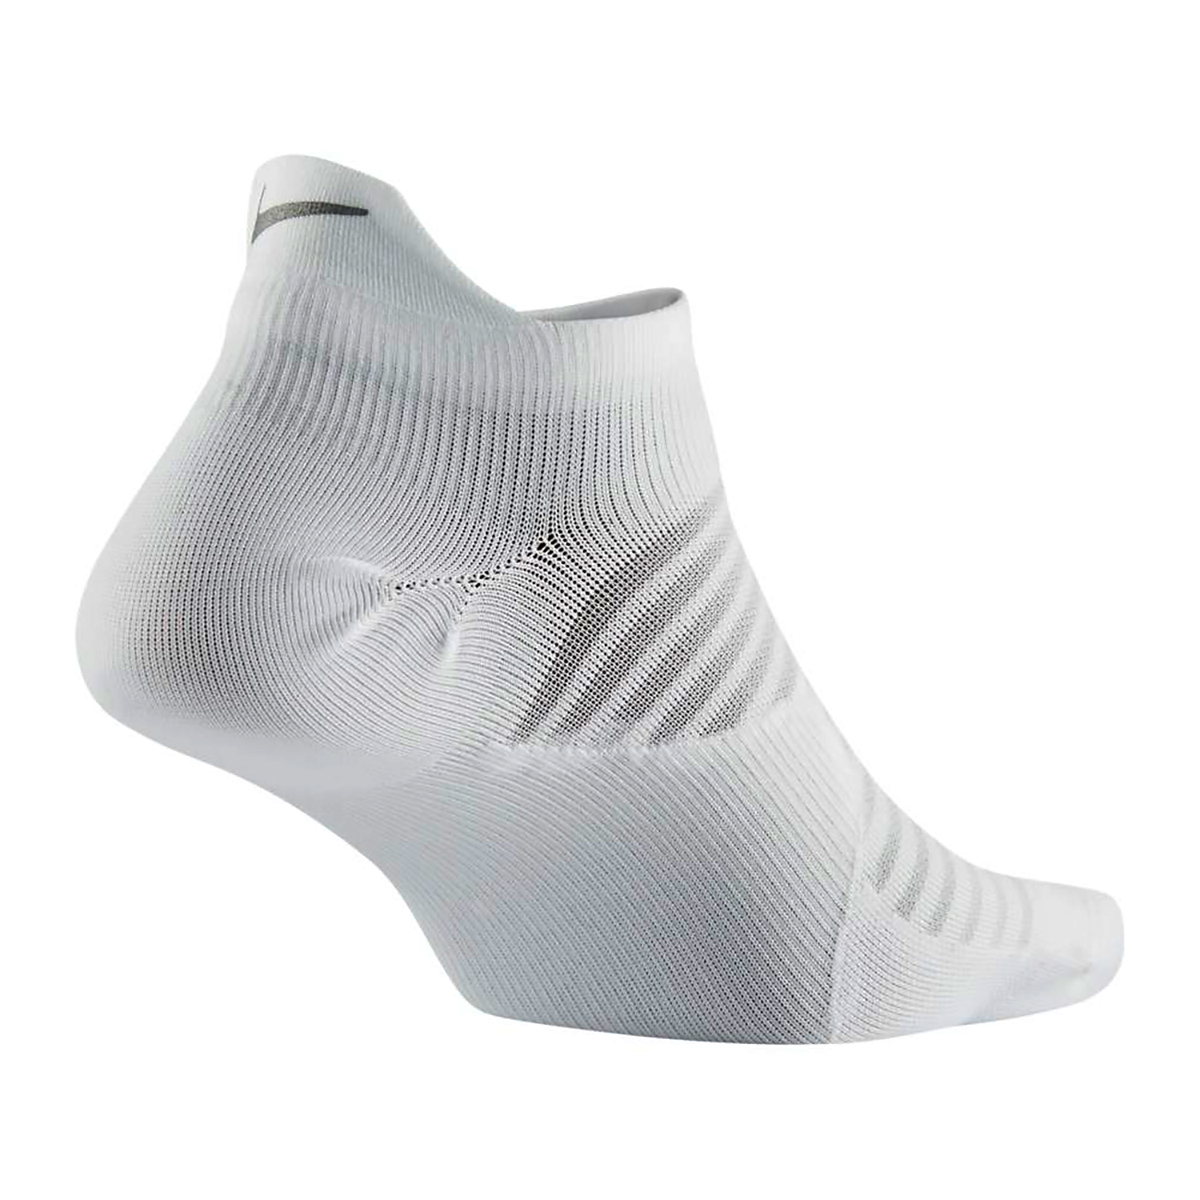 Nike Spark Lightweight No-Show Running Socks - Color: White - Size: 4/5.5, White, large, image 2